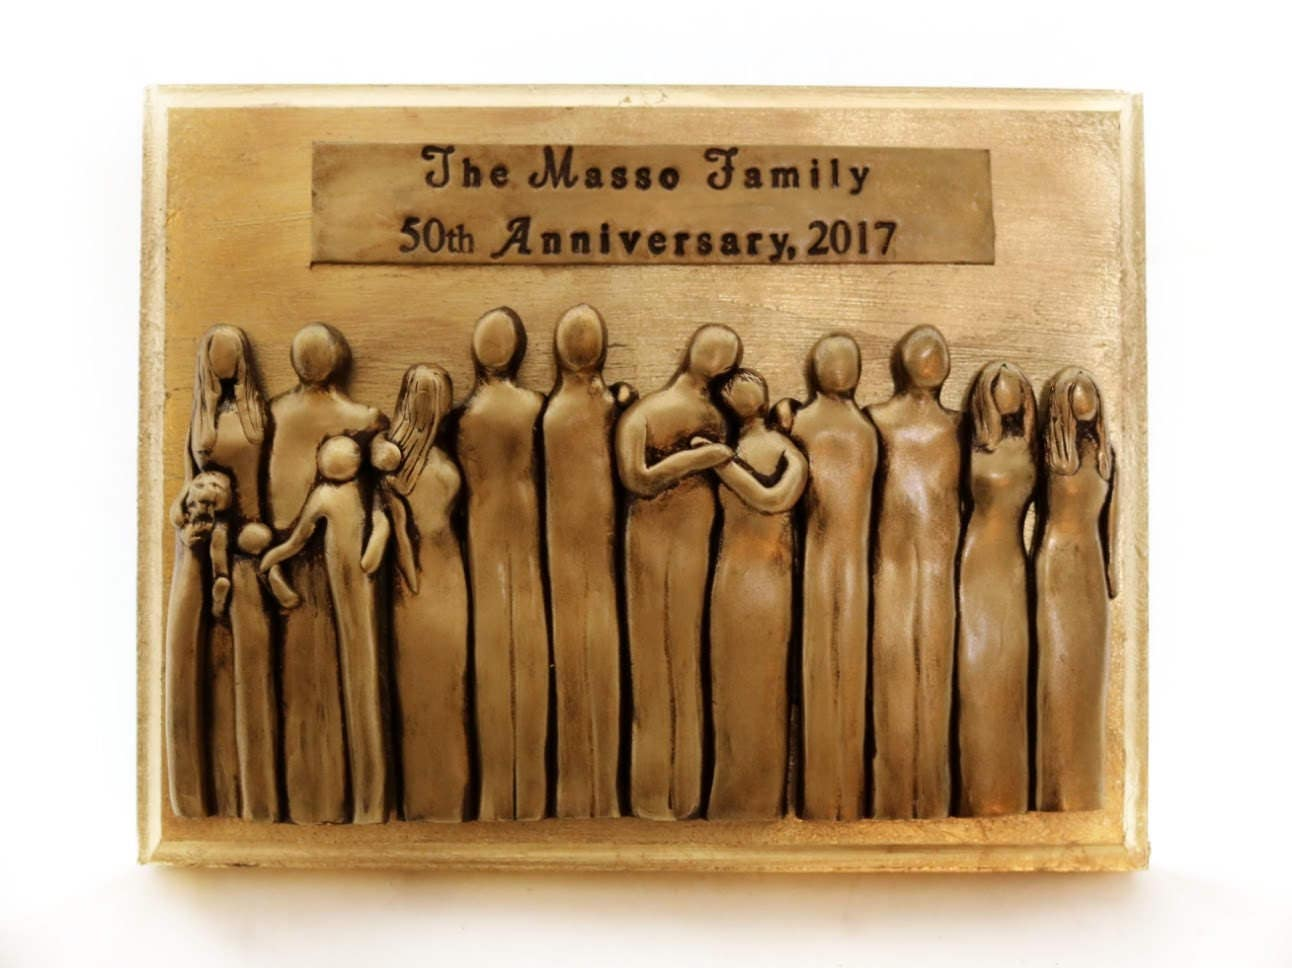 Gifts For Fiftieth Wedding Anniversary: 50th Anniversary Plaque 50th Anniversary Gifts For Him 50th